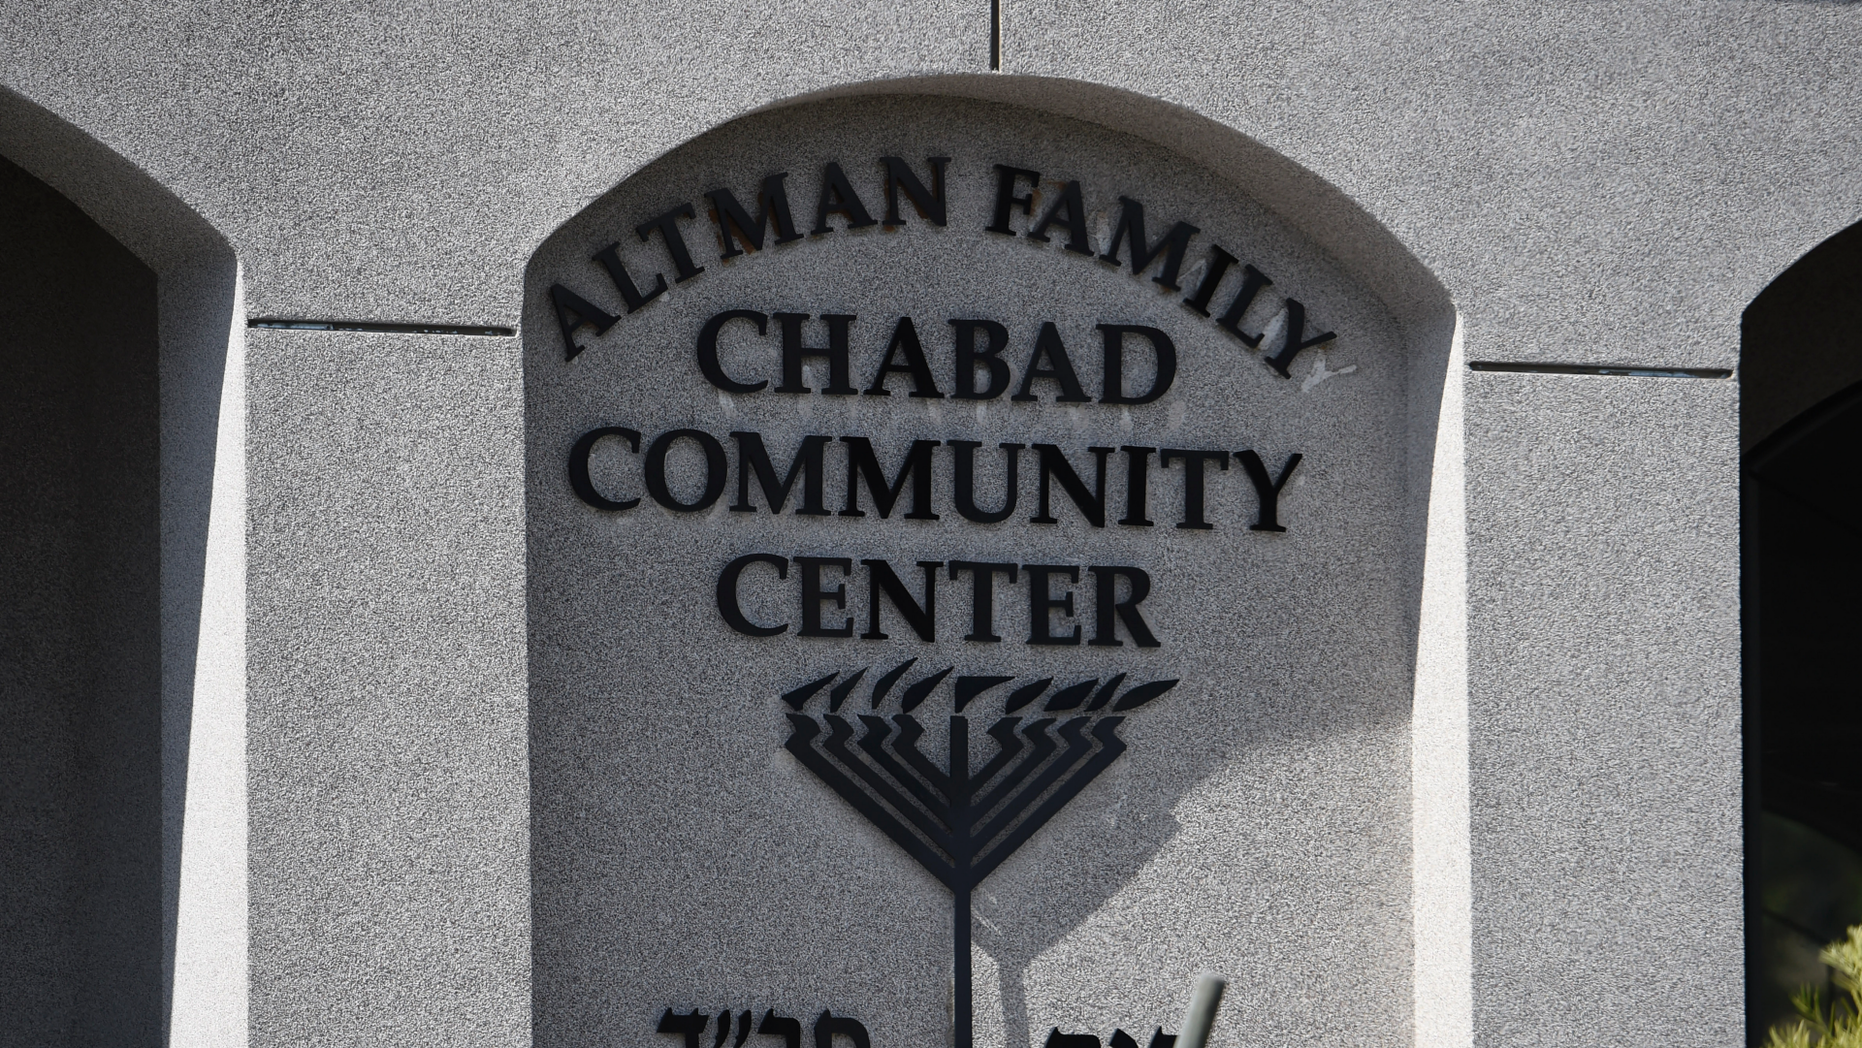 An exterior view of the Altman Family Chabad Community Center at the Chabad of Poway Synagogue Saturday, April 27, 2019, in Poway, Calif. Several people were injured in a shooting at the synagogue. (AP Photo/Denis Poroy)